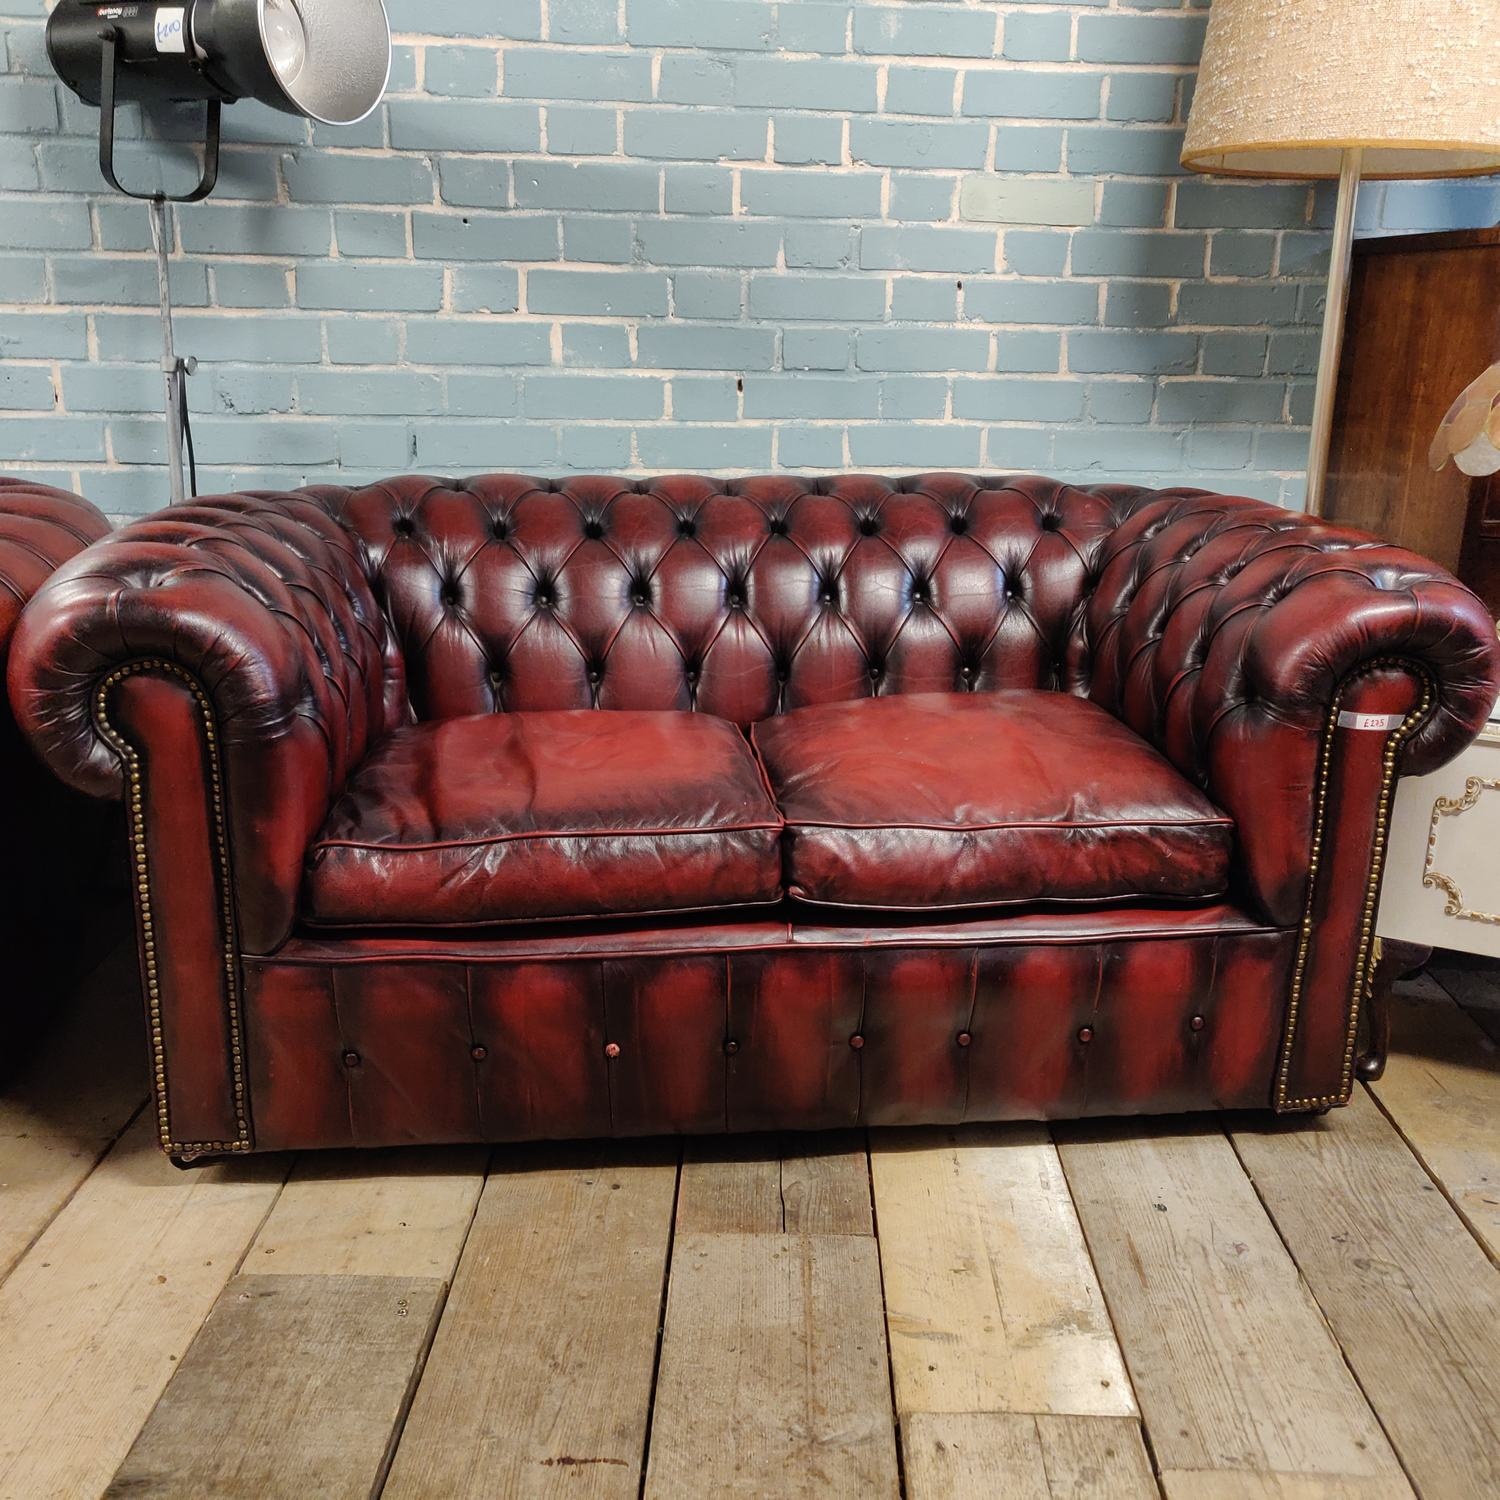 Chesterfield 2 Seat Sofa in Burgundy Red | Pre-Owned